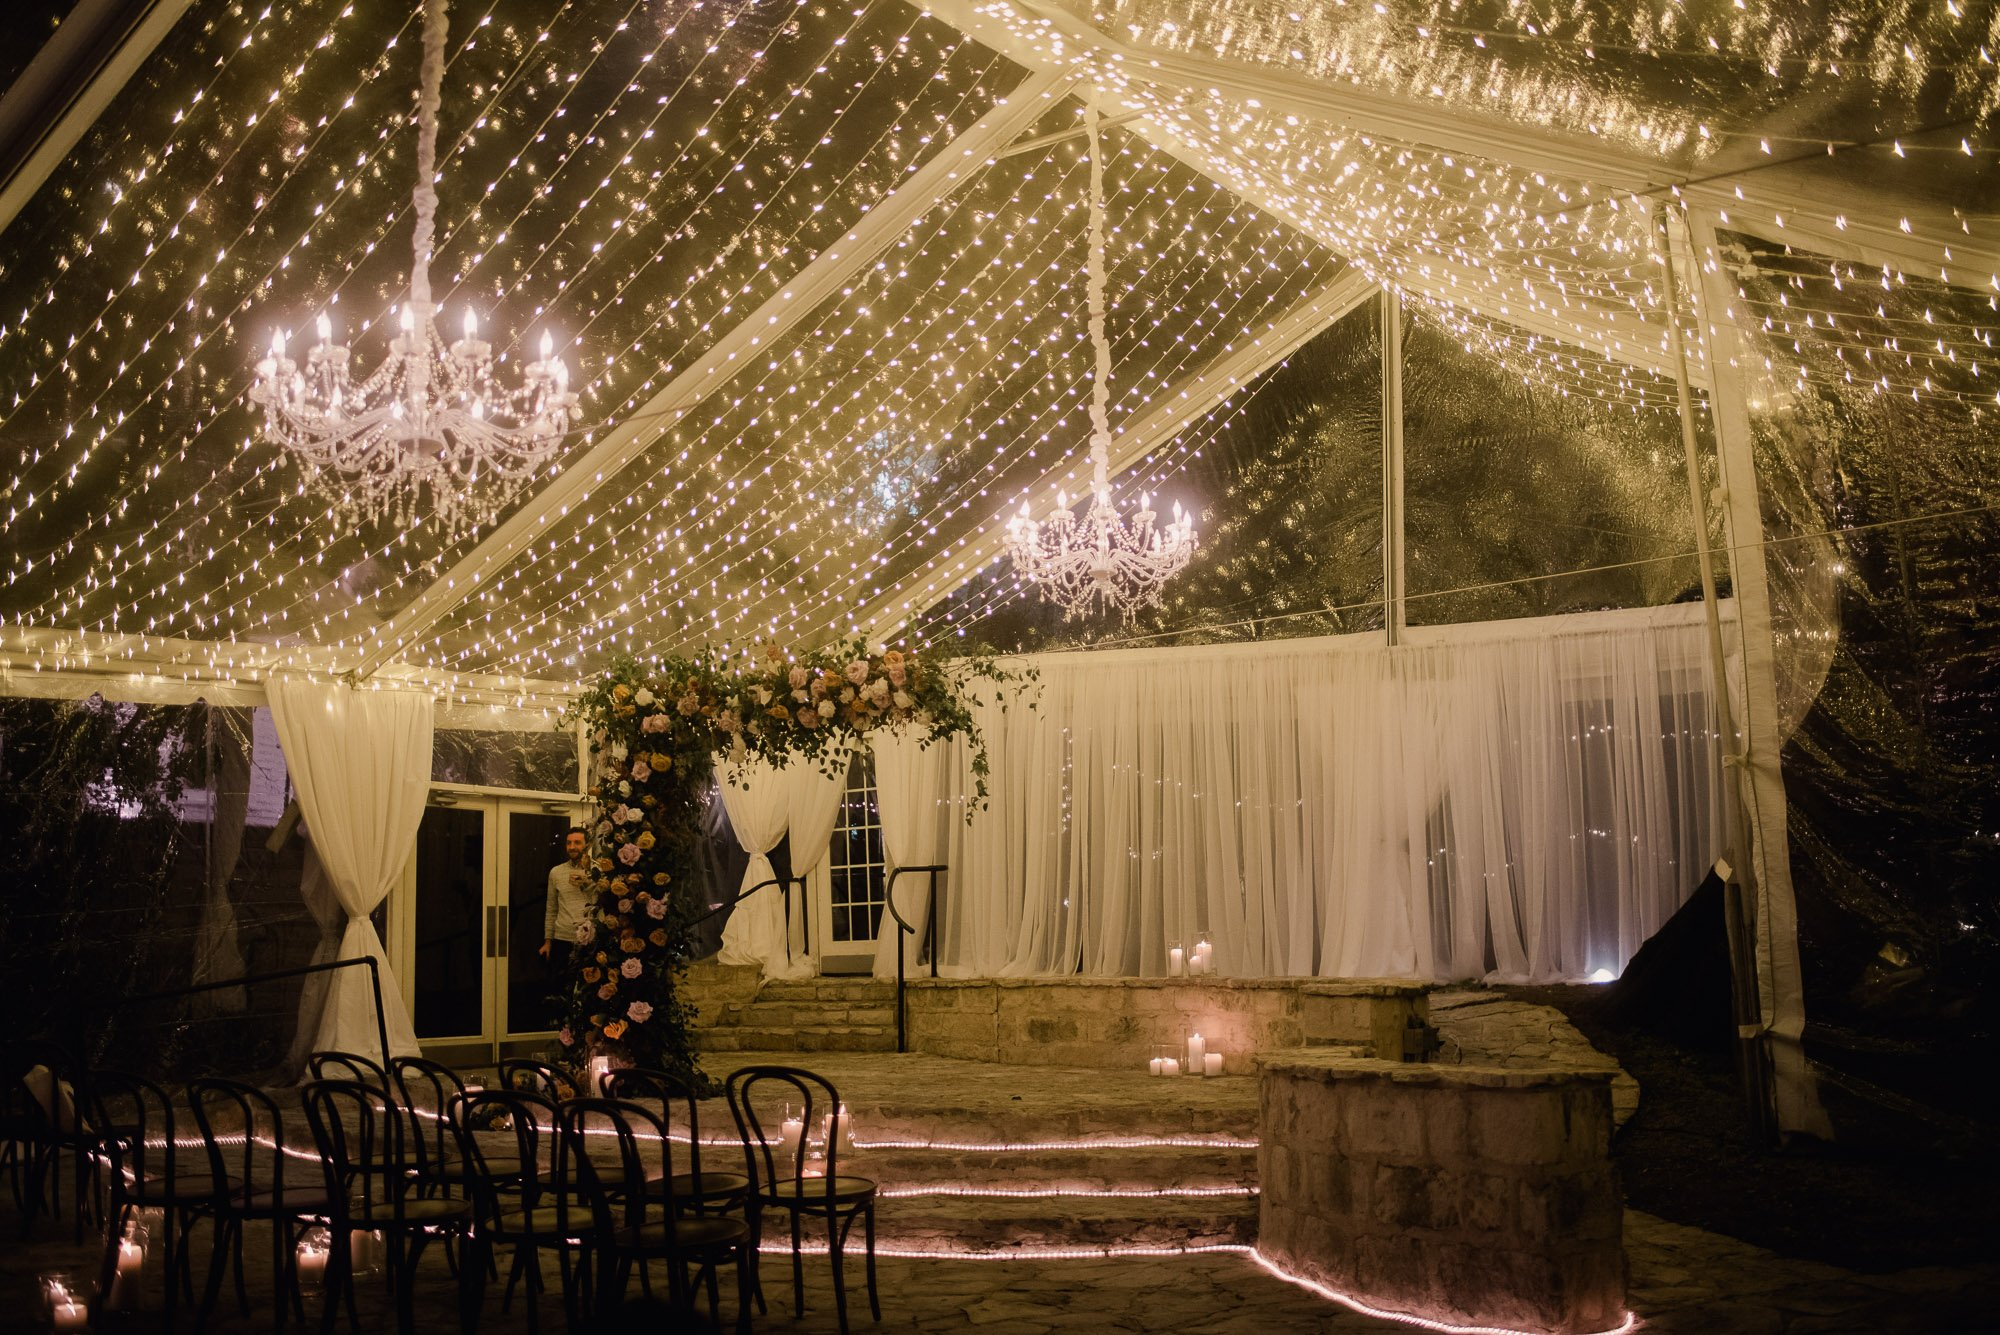 allan house winter wedding on courtyard at night